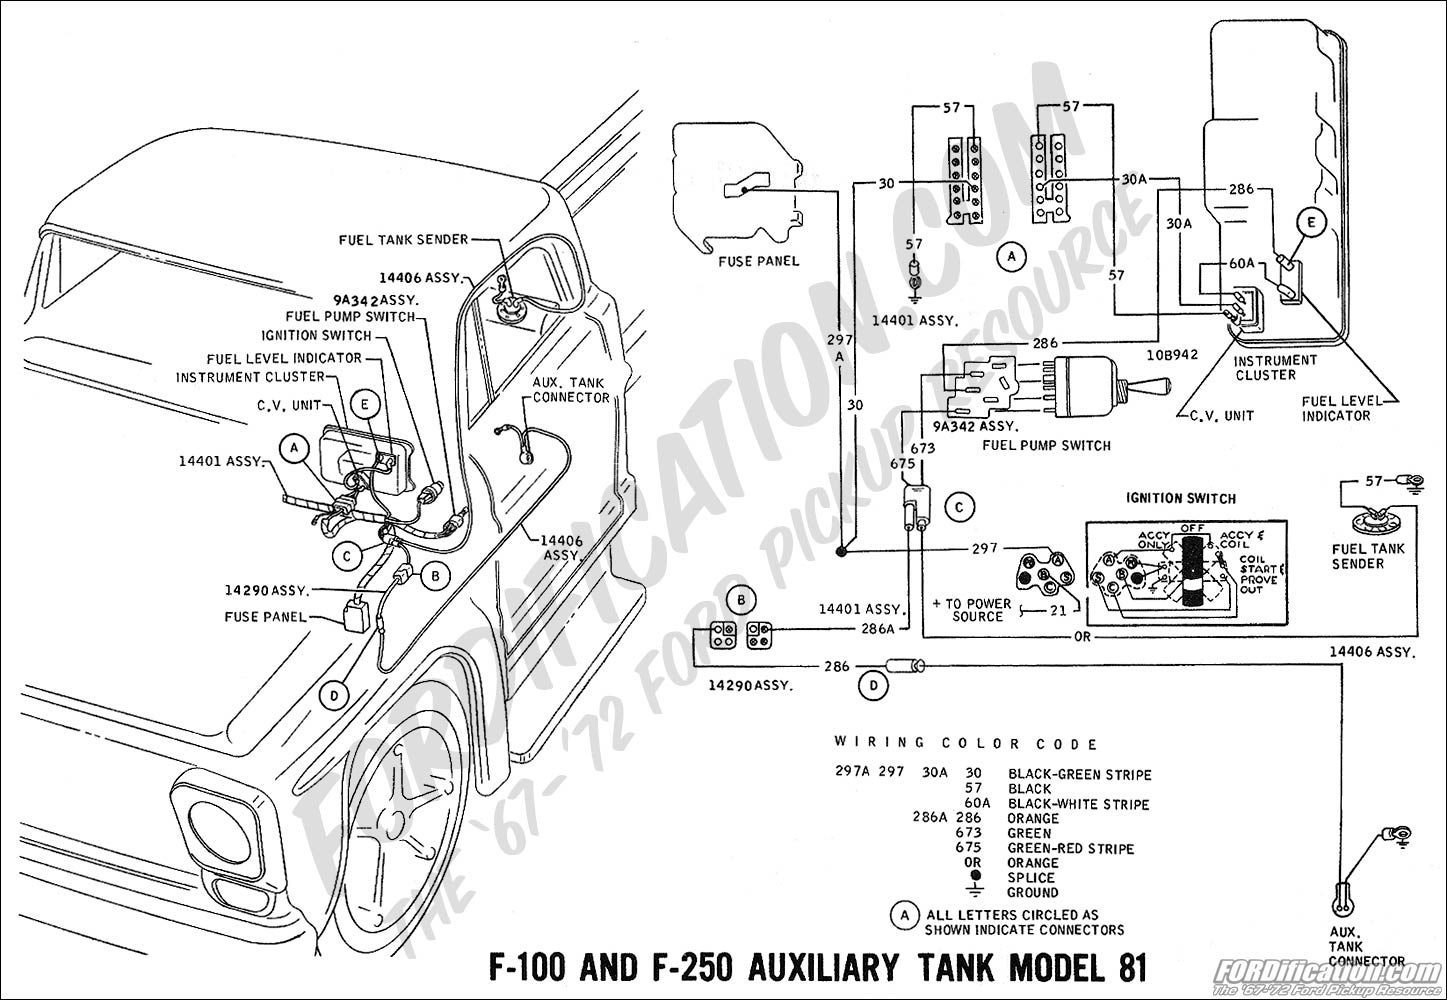 Escort Electrical Wiring Diagrams 1990 1999 further 4 Channel   Wiring Diagram likewise 31 69804 in addition 2006 Chrysler Town And Country Fuse Box Diagram 1999 Plymouth Voyager Wiring Diagrams 4 Fit U003d1088 2c1382 U0026ssl U003d1 Shot Marvelous Junction Layout Trying The Relay together with Chevy Tilt Steering Column Wiring Diagram. on ford wiring diagrams